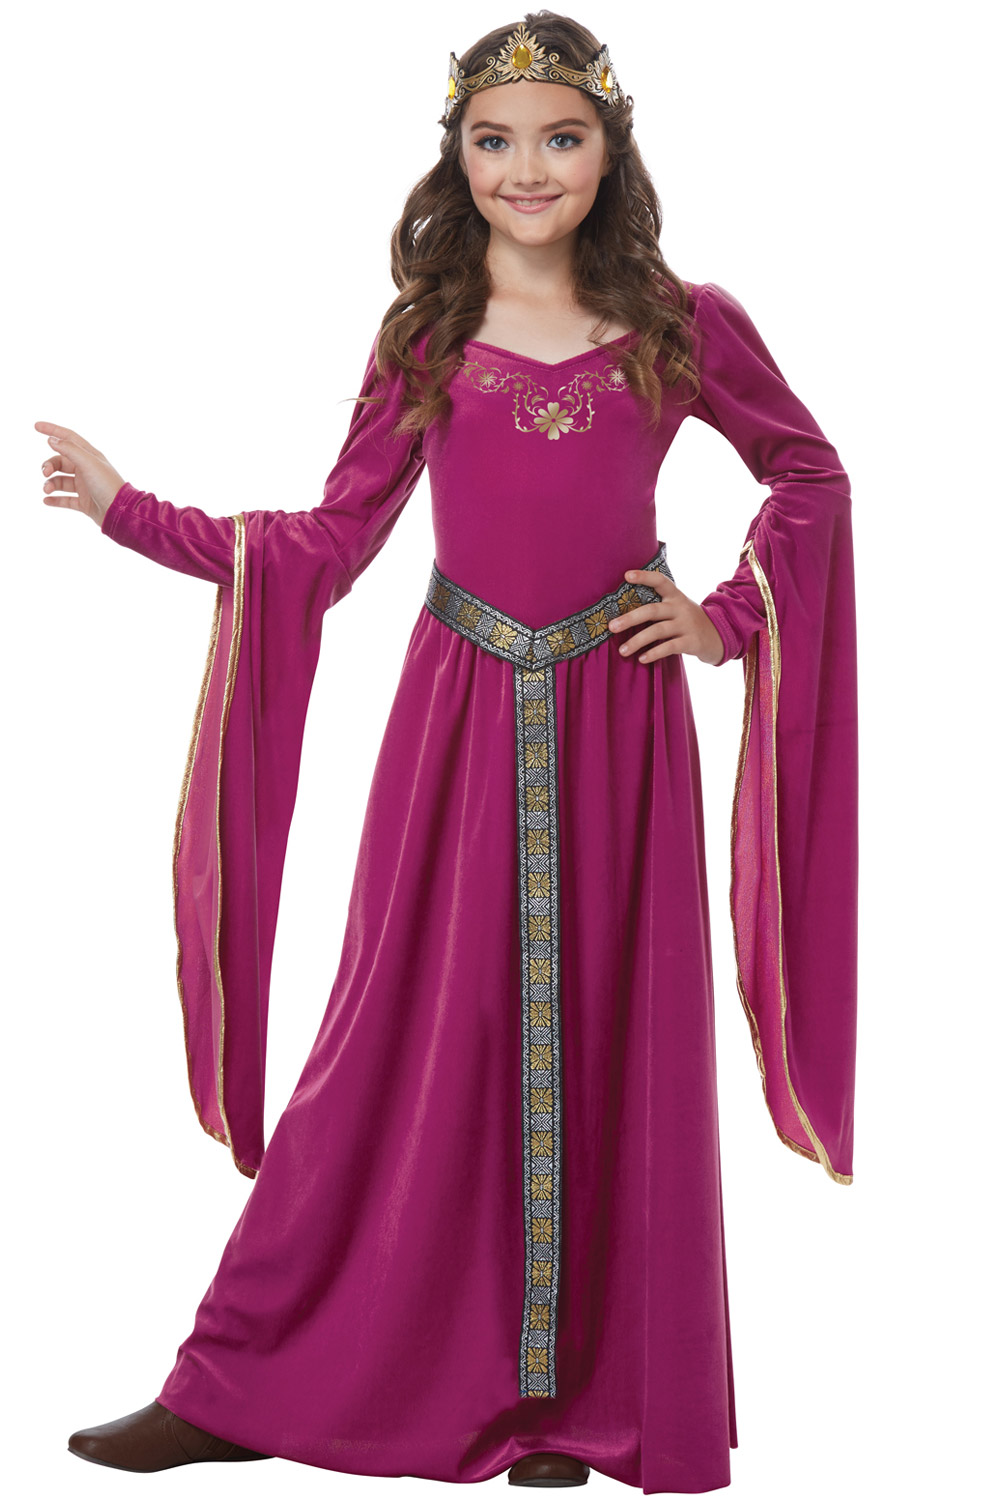 Blushing Medieval Princess Child Costume